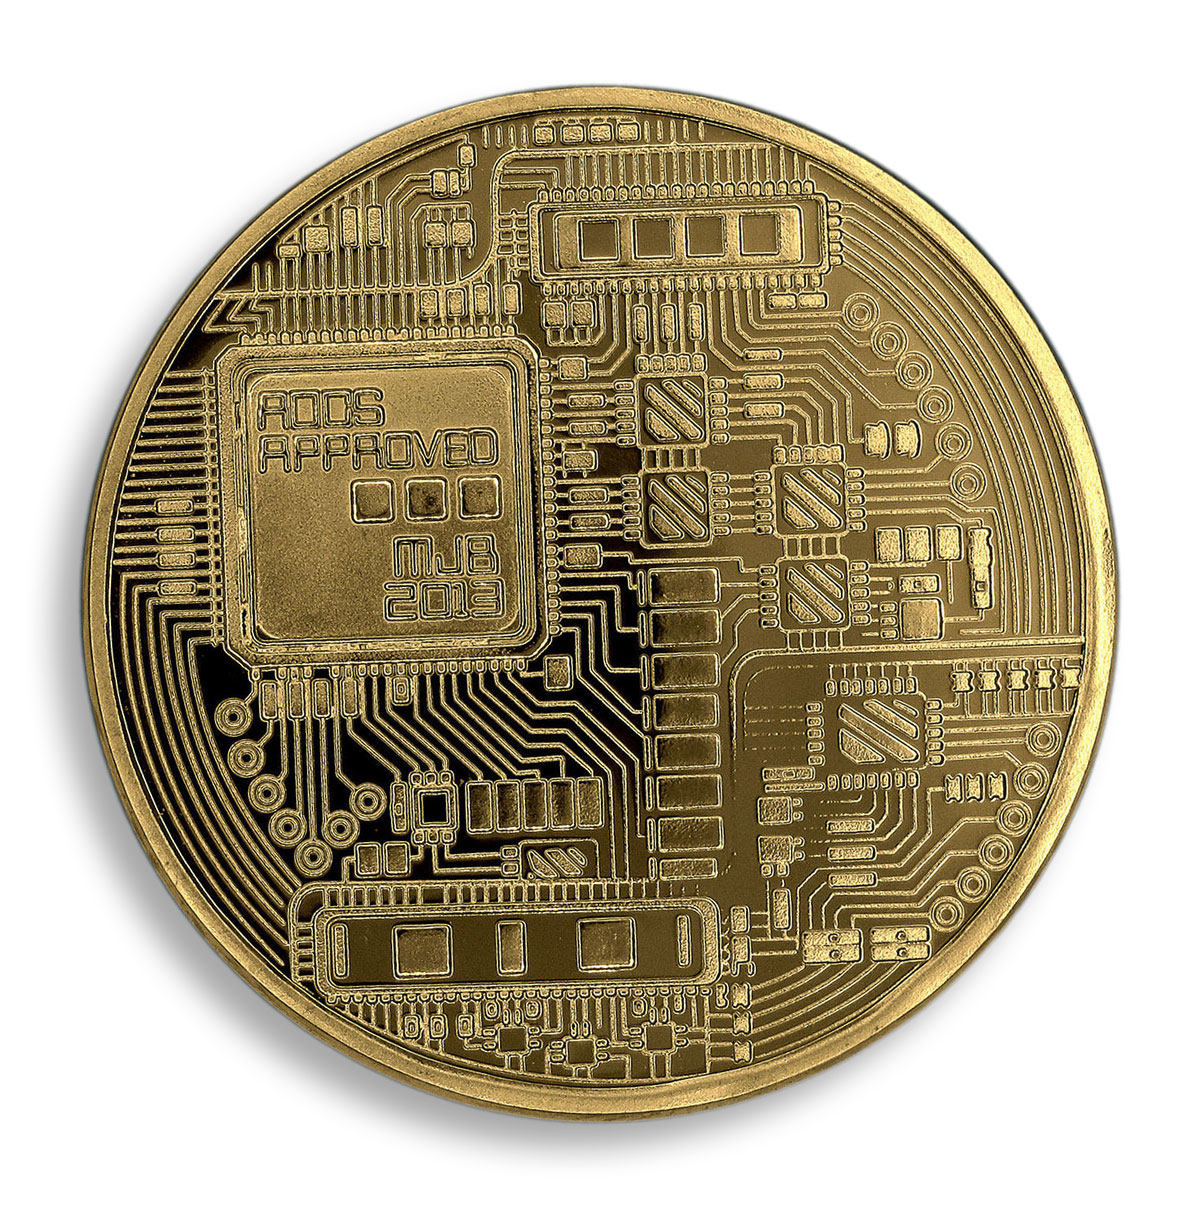 Bitcoin, AOCS Approved, MJB 2013, Art, Gold Plated Coin, Token, Souvenir